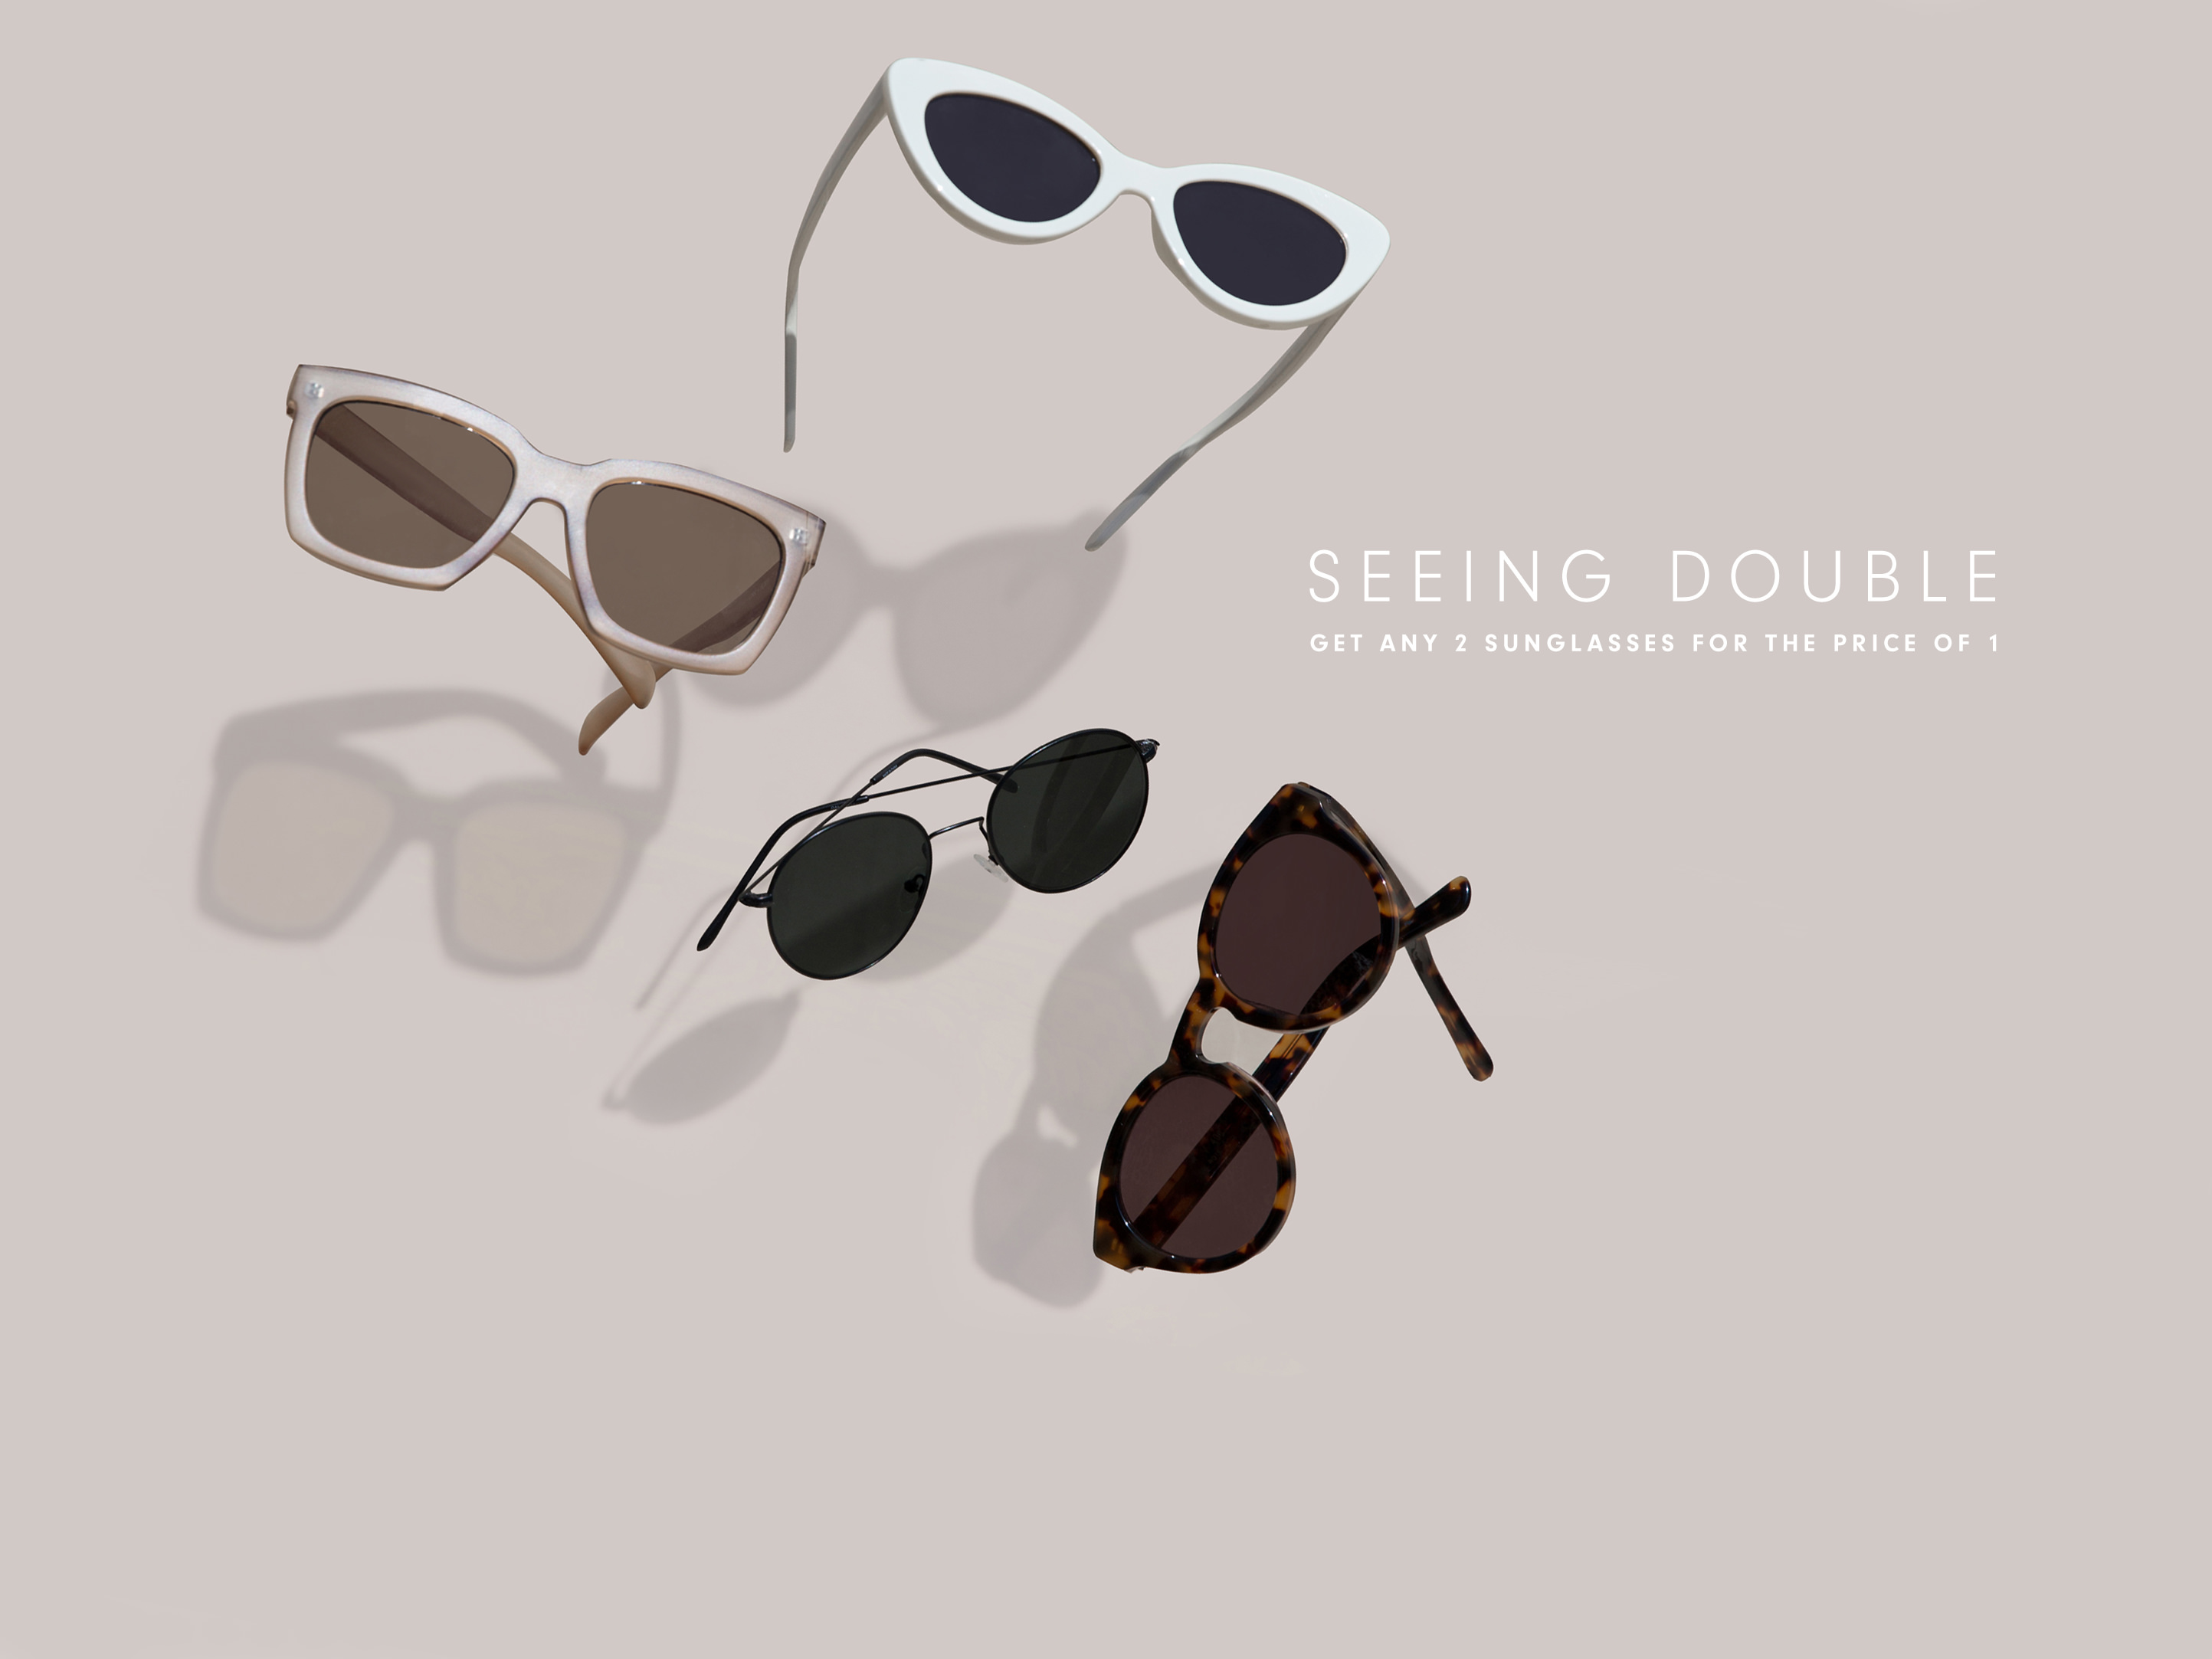 Sunglasses sale buy one get one